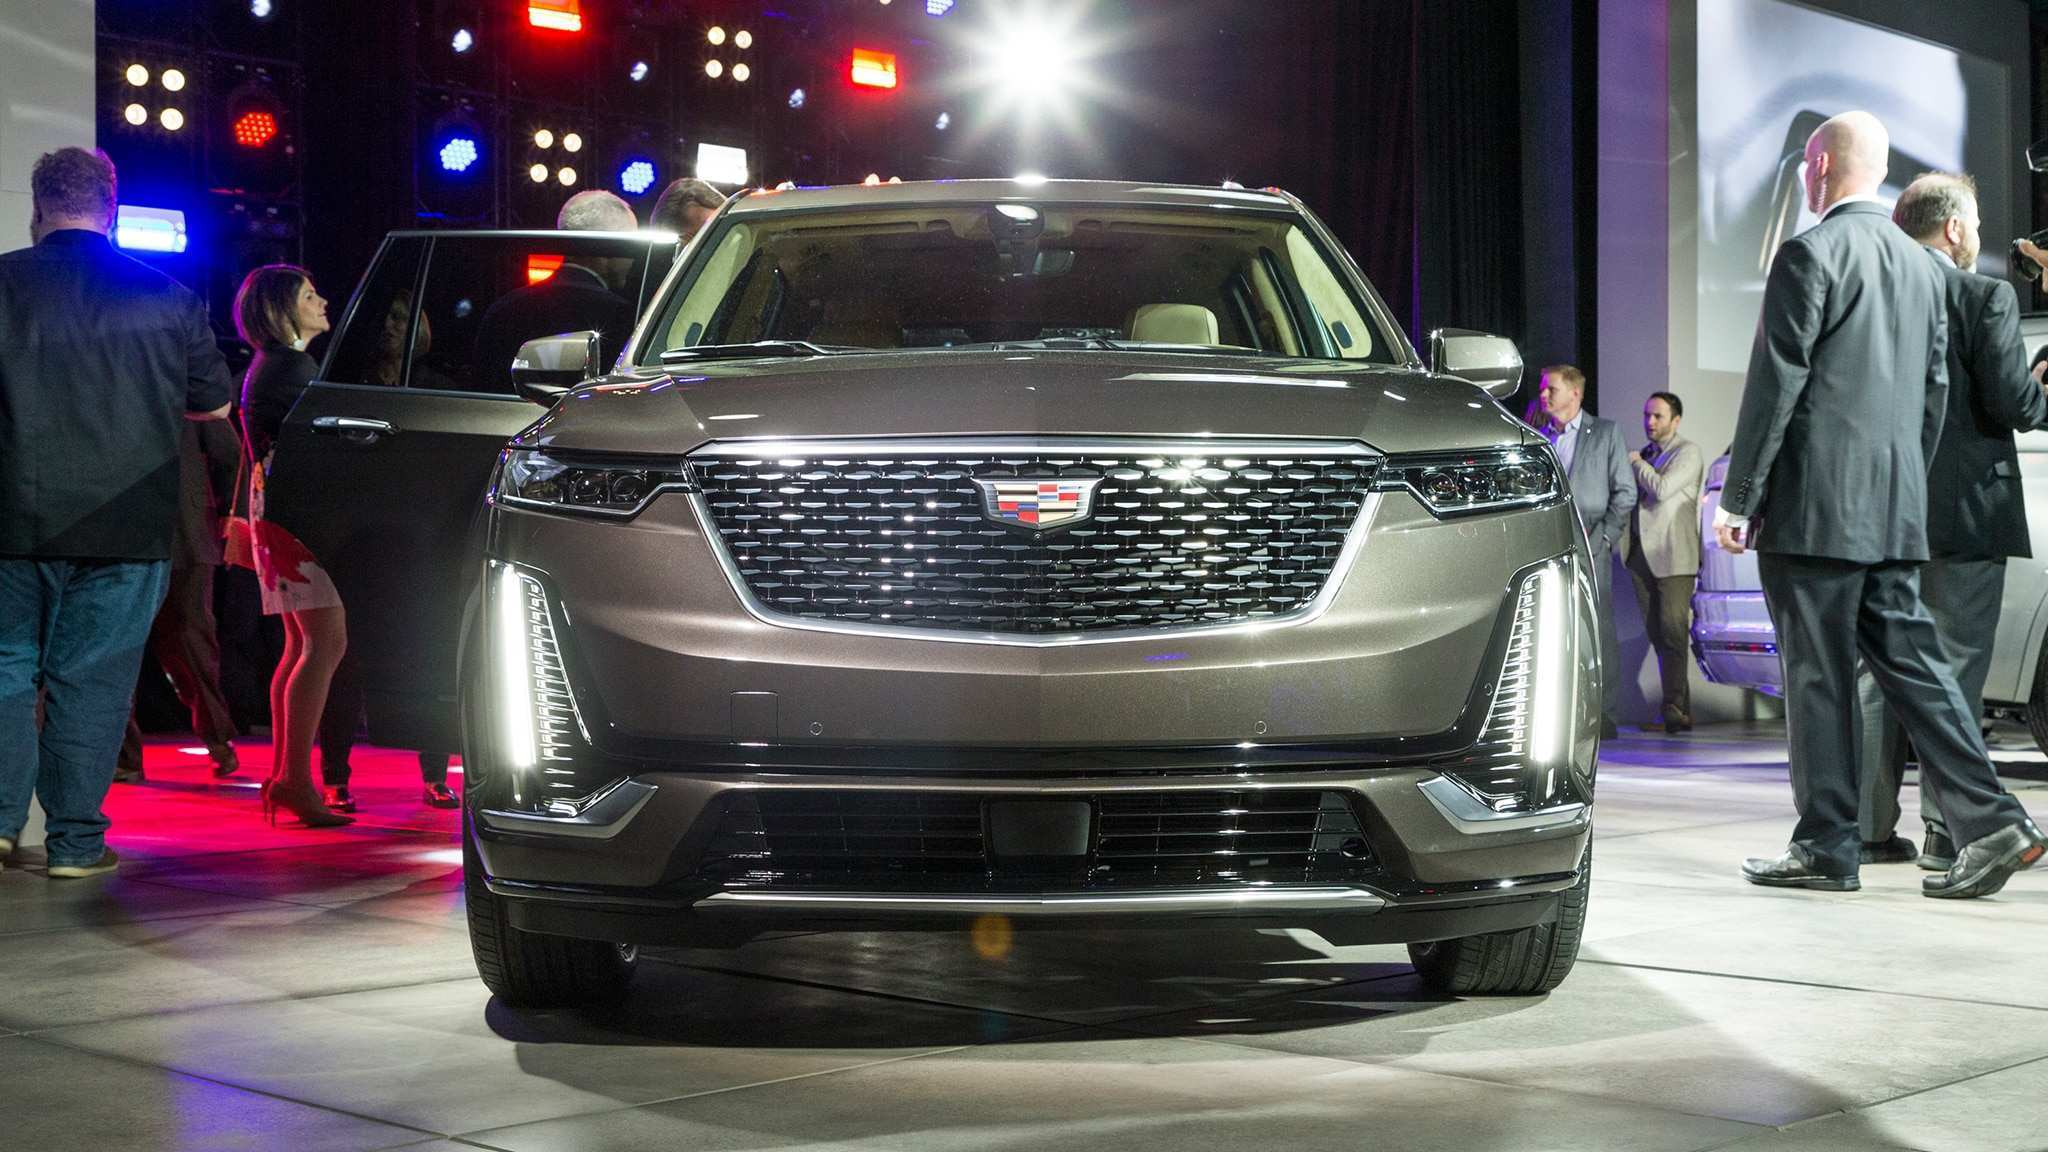 48 New 2020 Cadillac Escalade Reveal Exterior And Interior